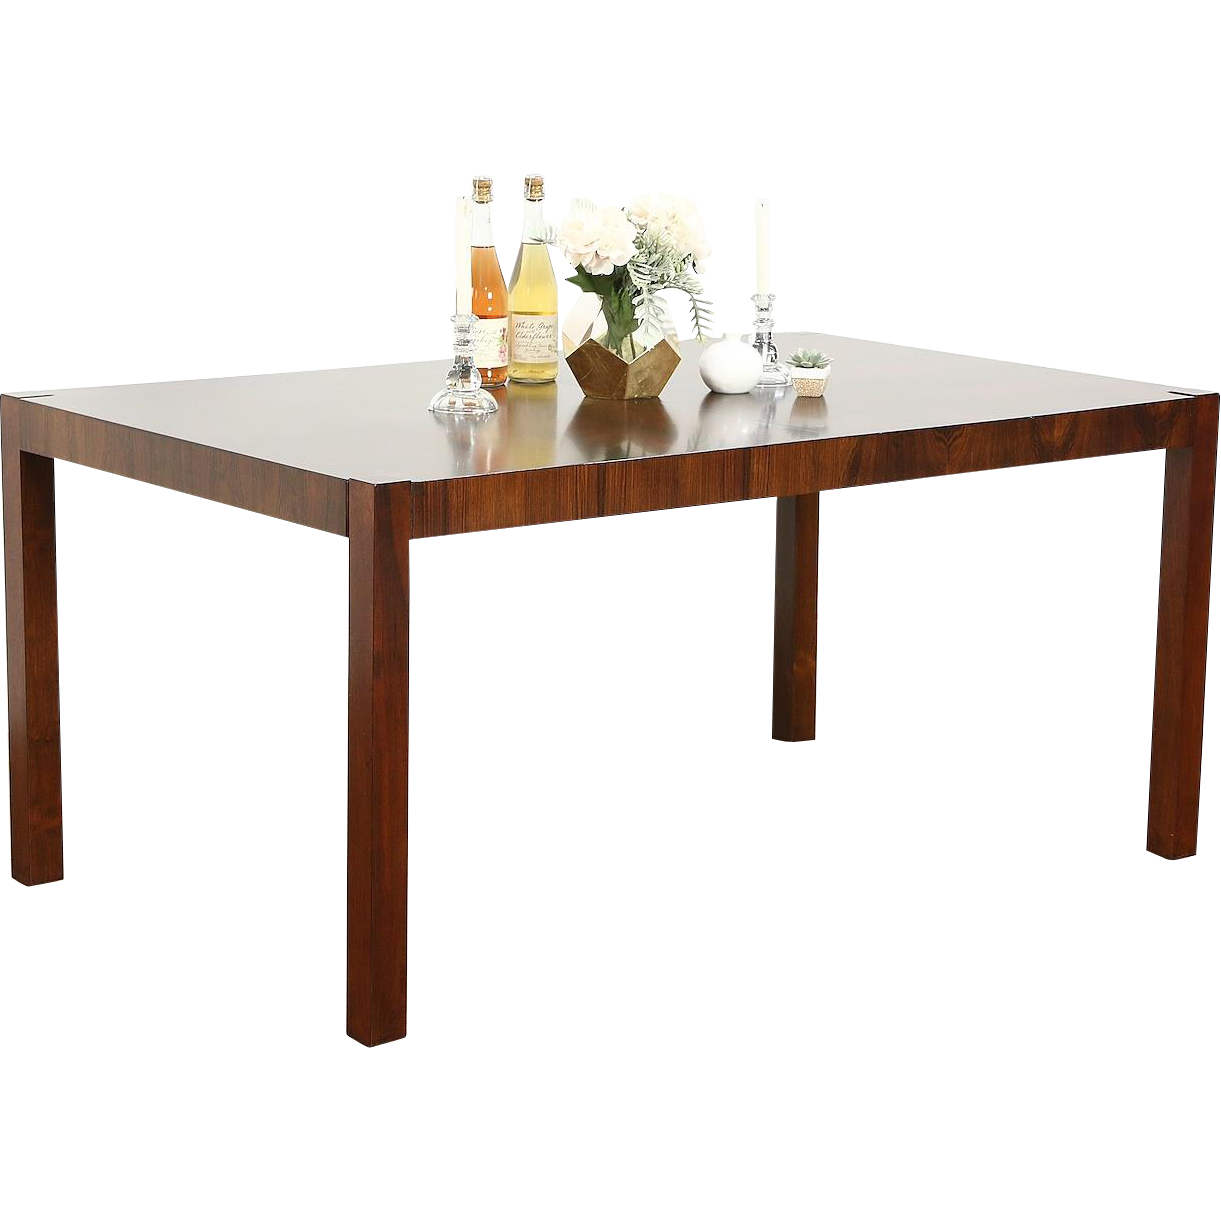 100 Rosewood Dining Room Furniture Danish Denmark  : 257561L from 45.76.66.238 size 1221 x 1221 png 408kB